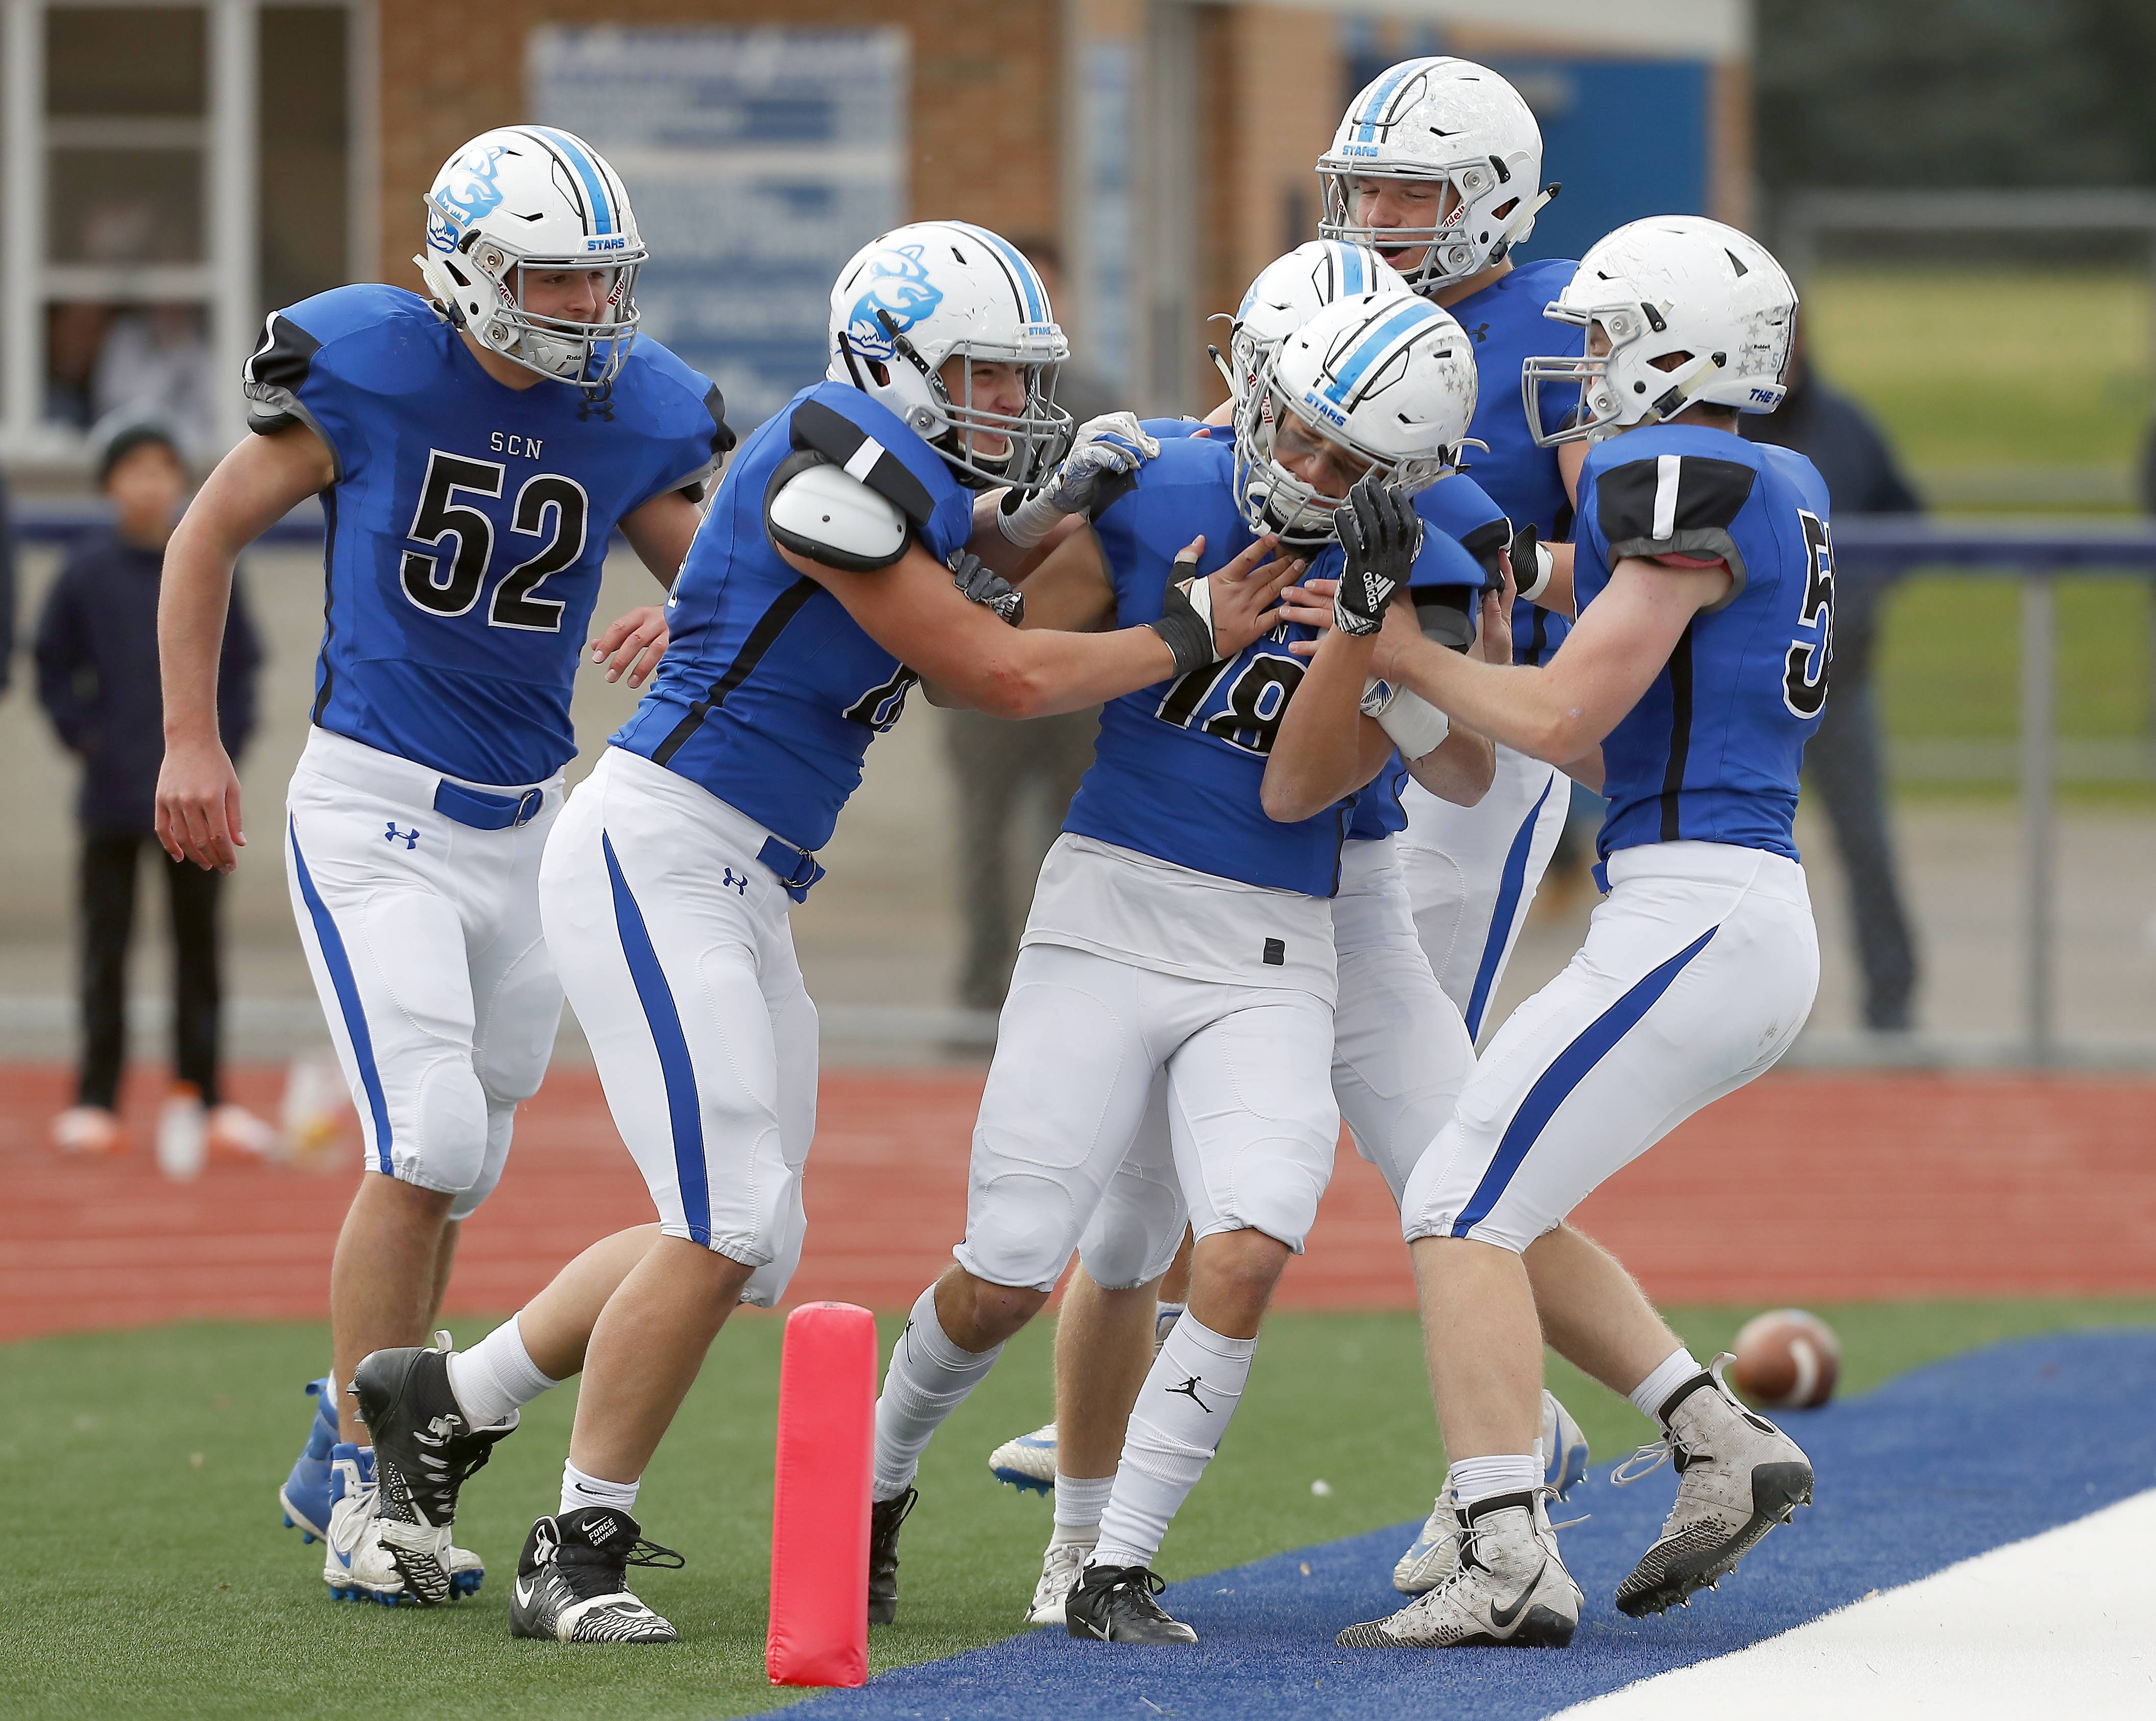 St. Charles North's Alec Kritta (18) is mugged by his teammates Saturday after a touchdown during IHSA Class 7A playoff football in St. Charles.